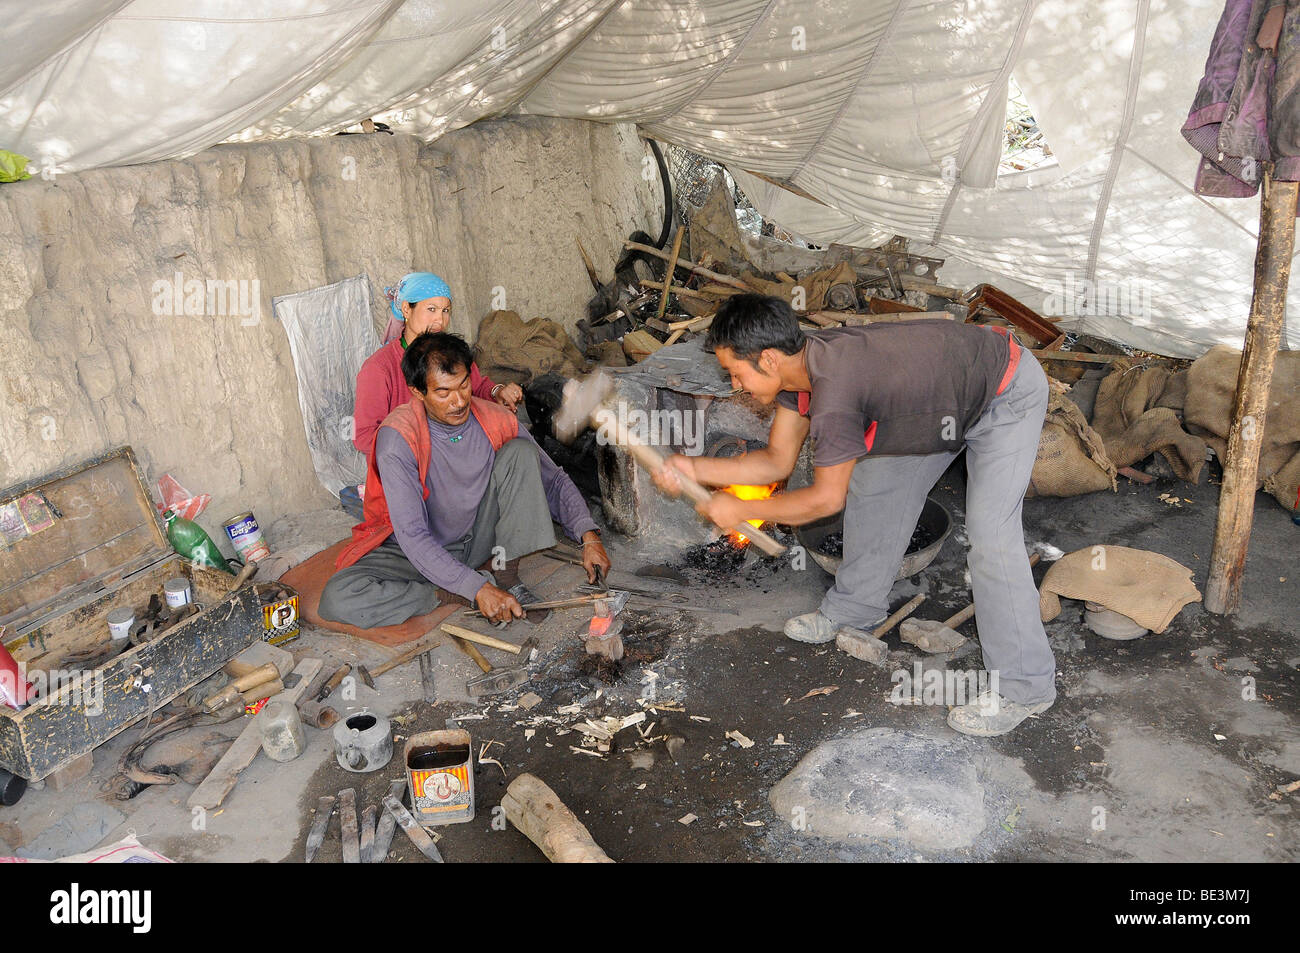 Blacksmith with his wife and assistant manufacturing sickles for the grain harvest in a tent, Shey, Ladakh, India, - Stock Image